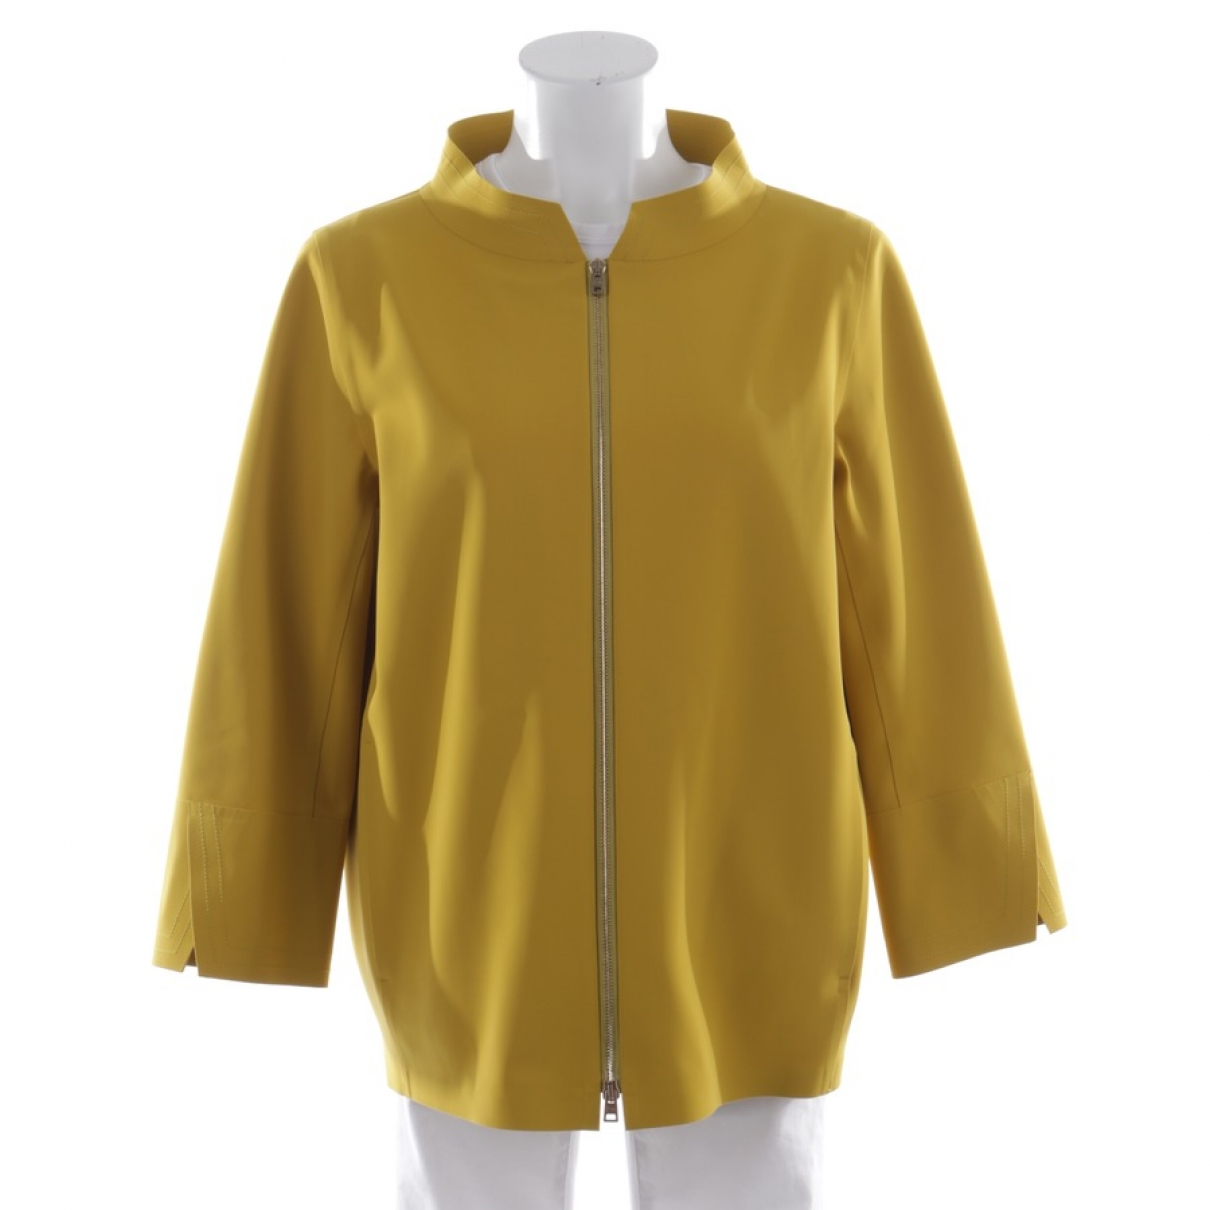 Herno \N Yellow jacket for Women 34 FR